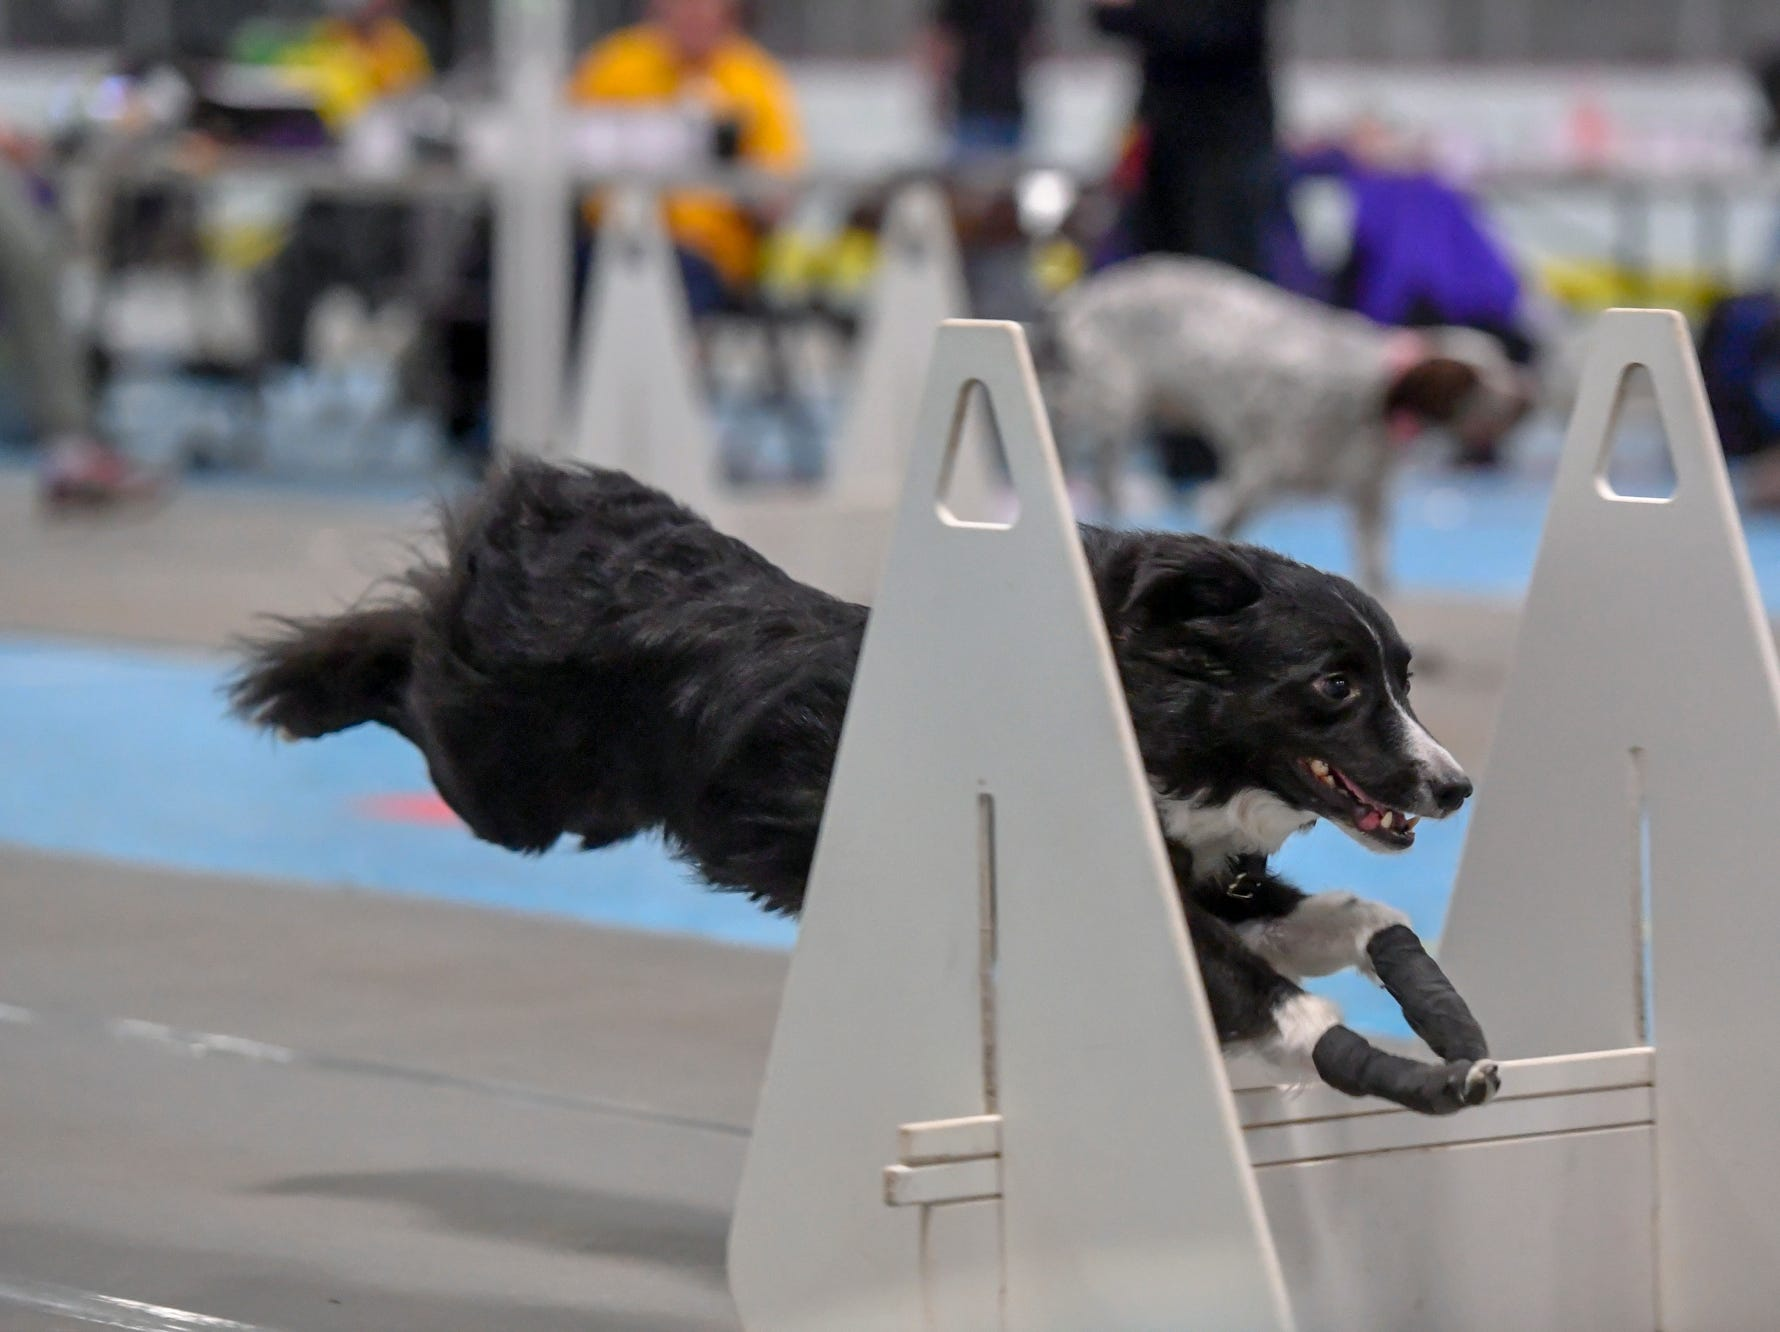 More than 40 teams compete in the Clean Break Flyball tournament at the Yellow Breeches Sports Complex in New Cumberland, Sunday, April 7, 2019.